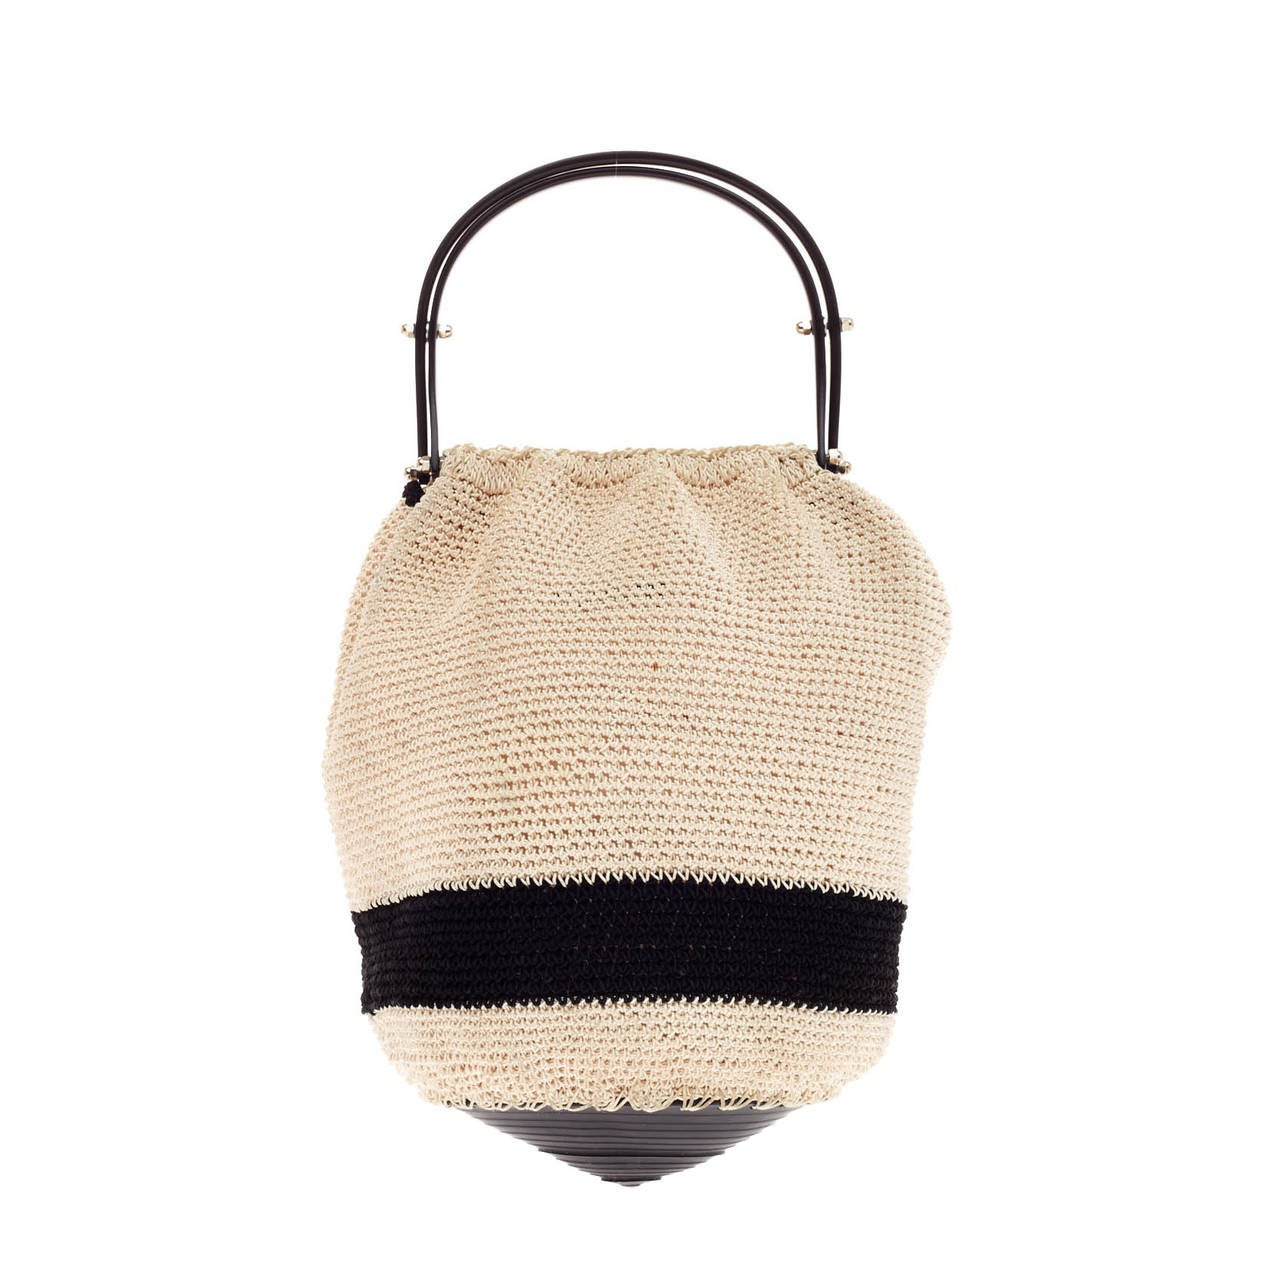 Chanel Top Handle Bucket Bag Crochet For Sale at 1stdibs